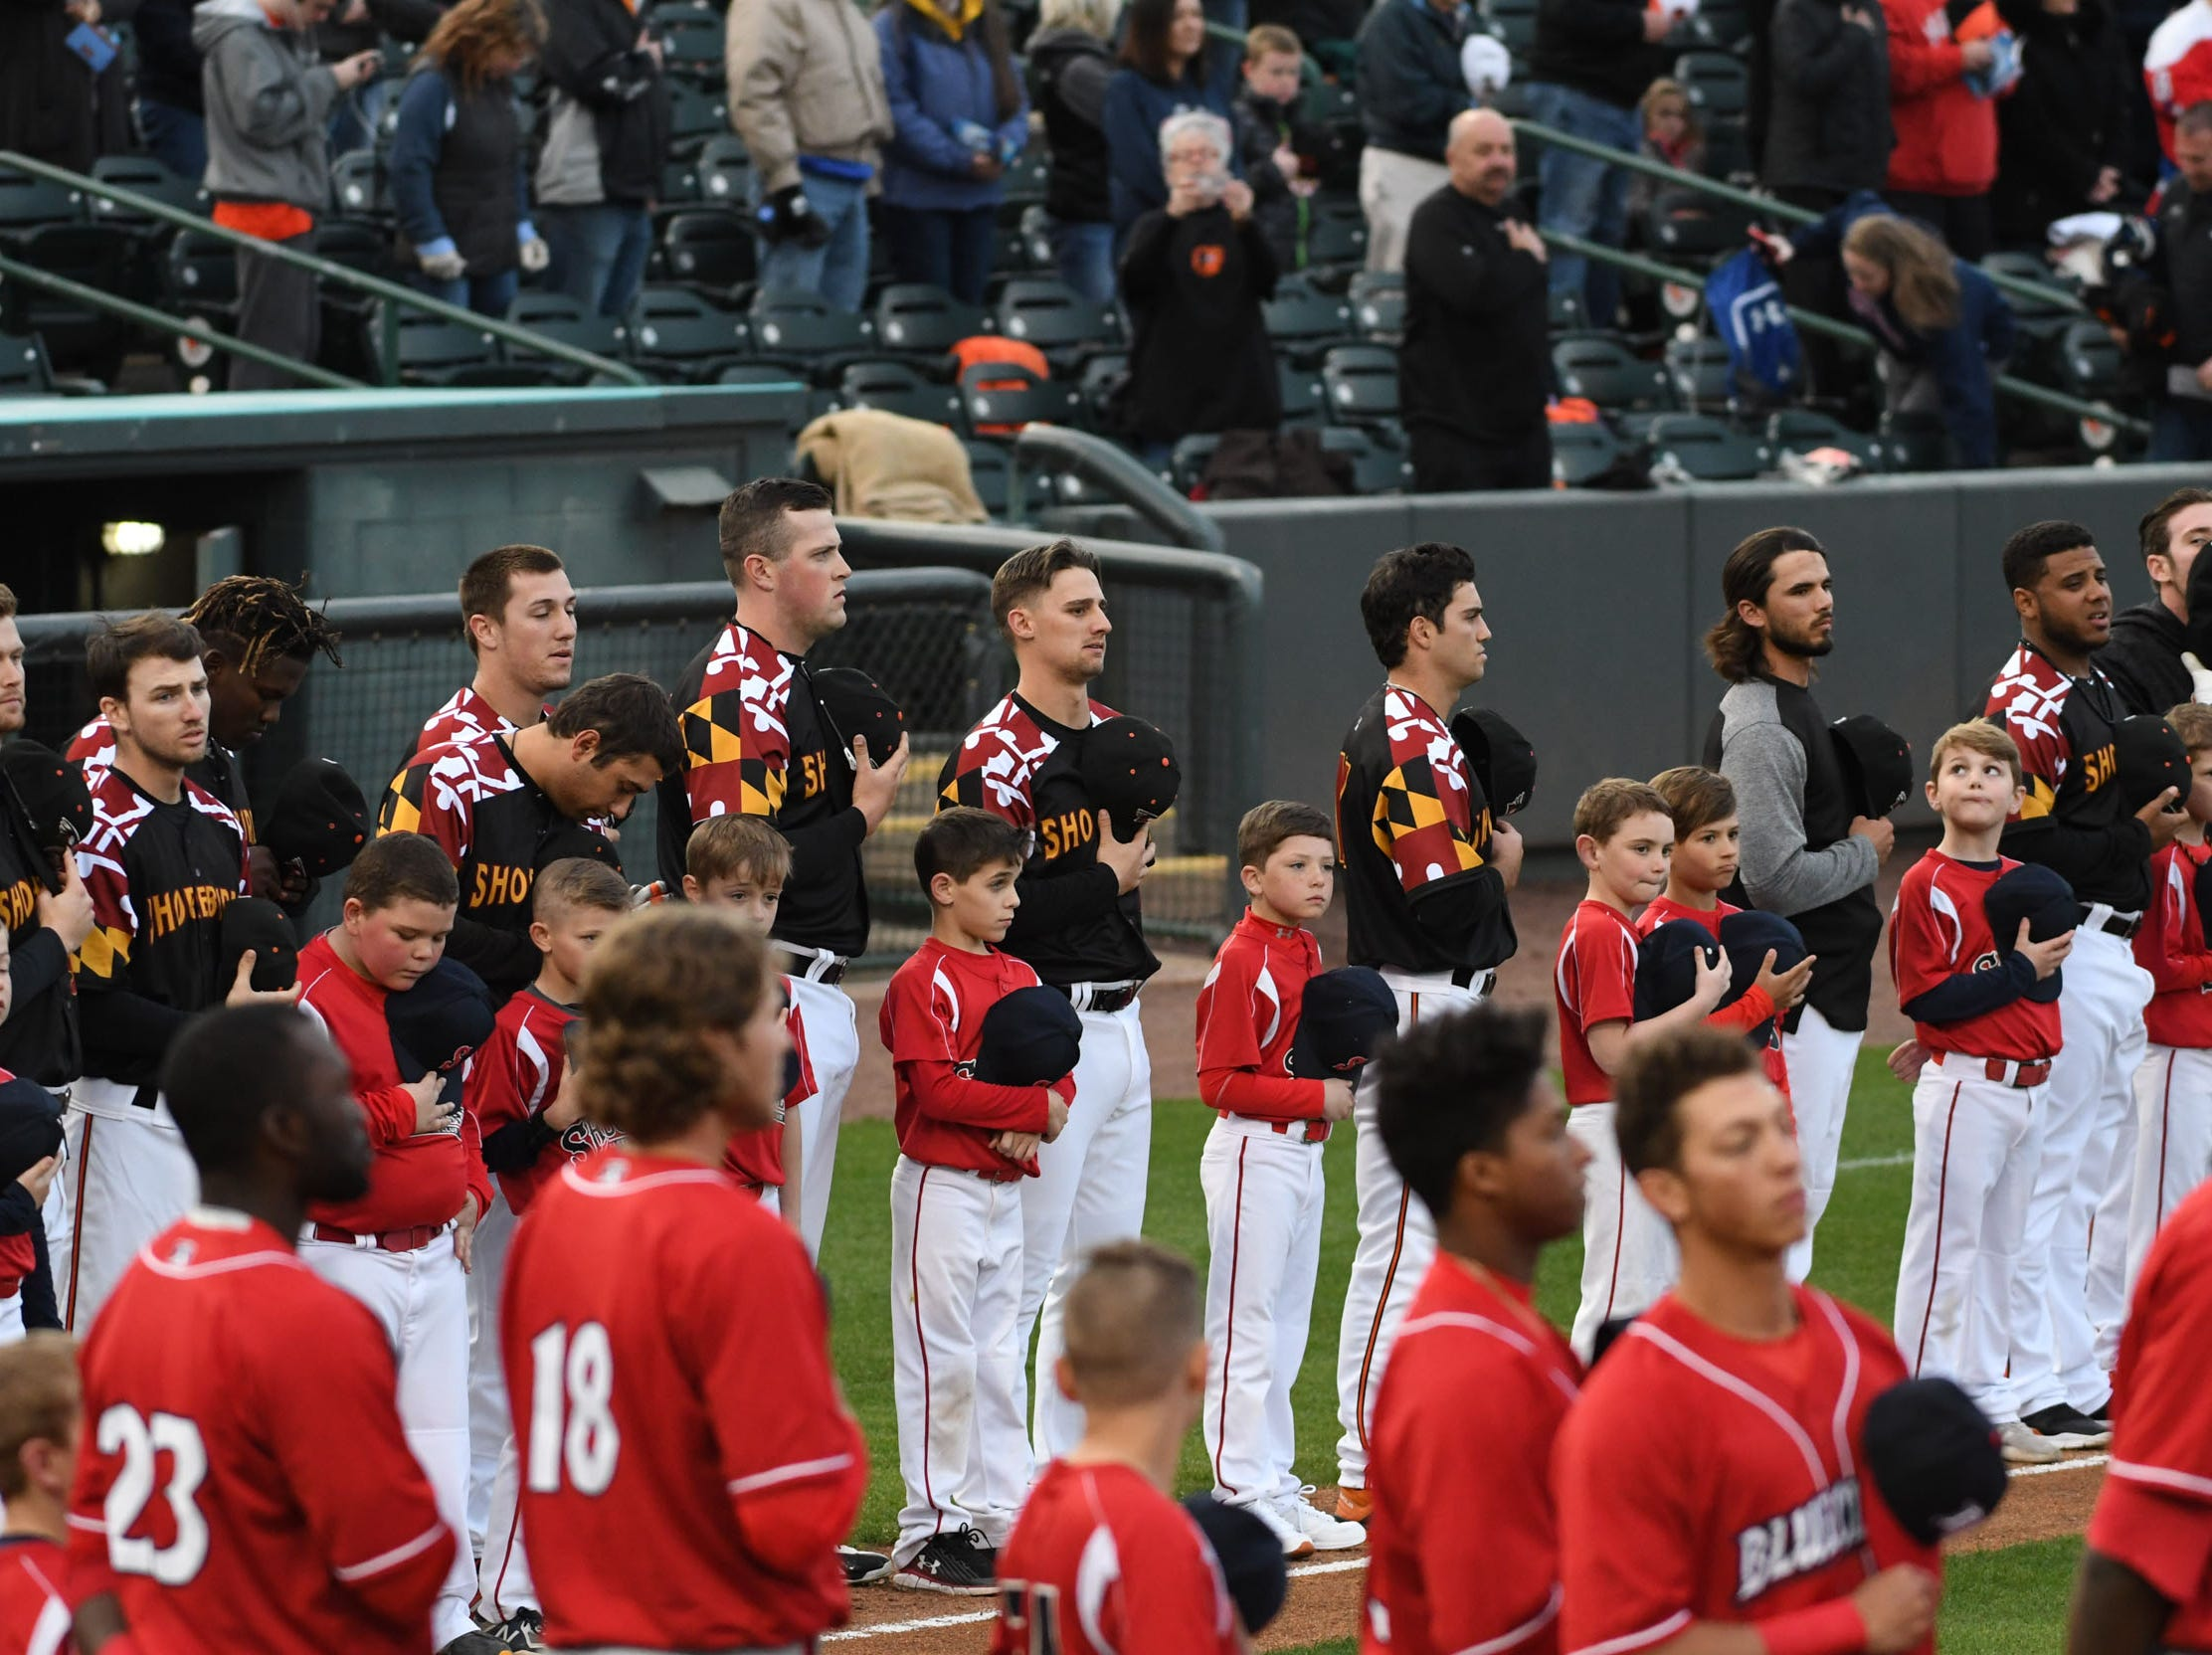 The Mid-Atlantic Shockers Baseball Club participated during Opening Night at the Shorebirds on Thursday, April 11, 2019.